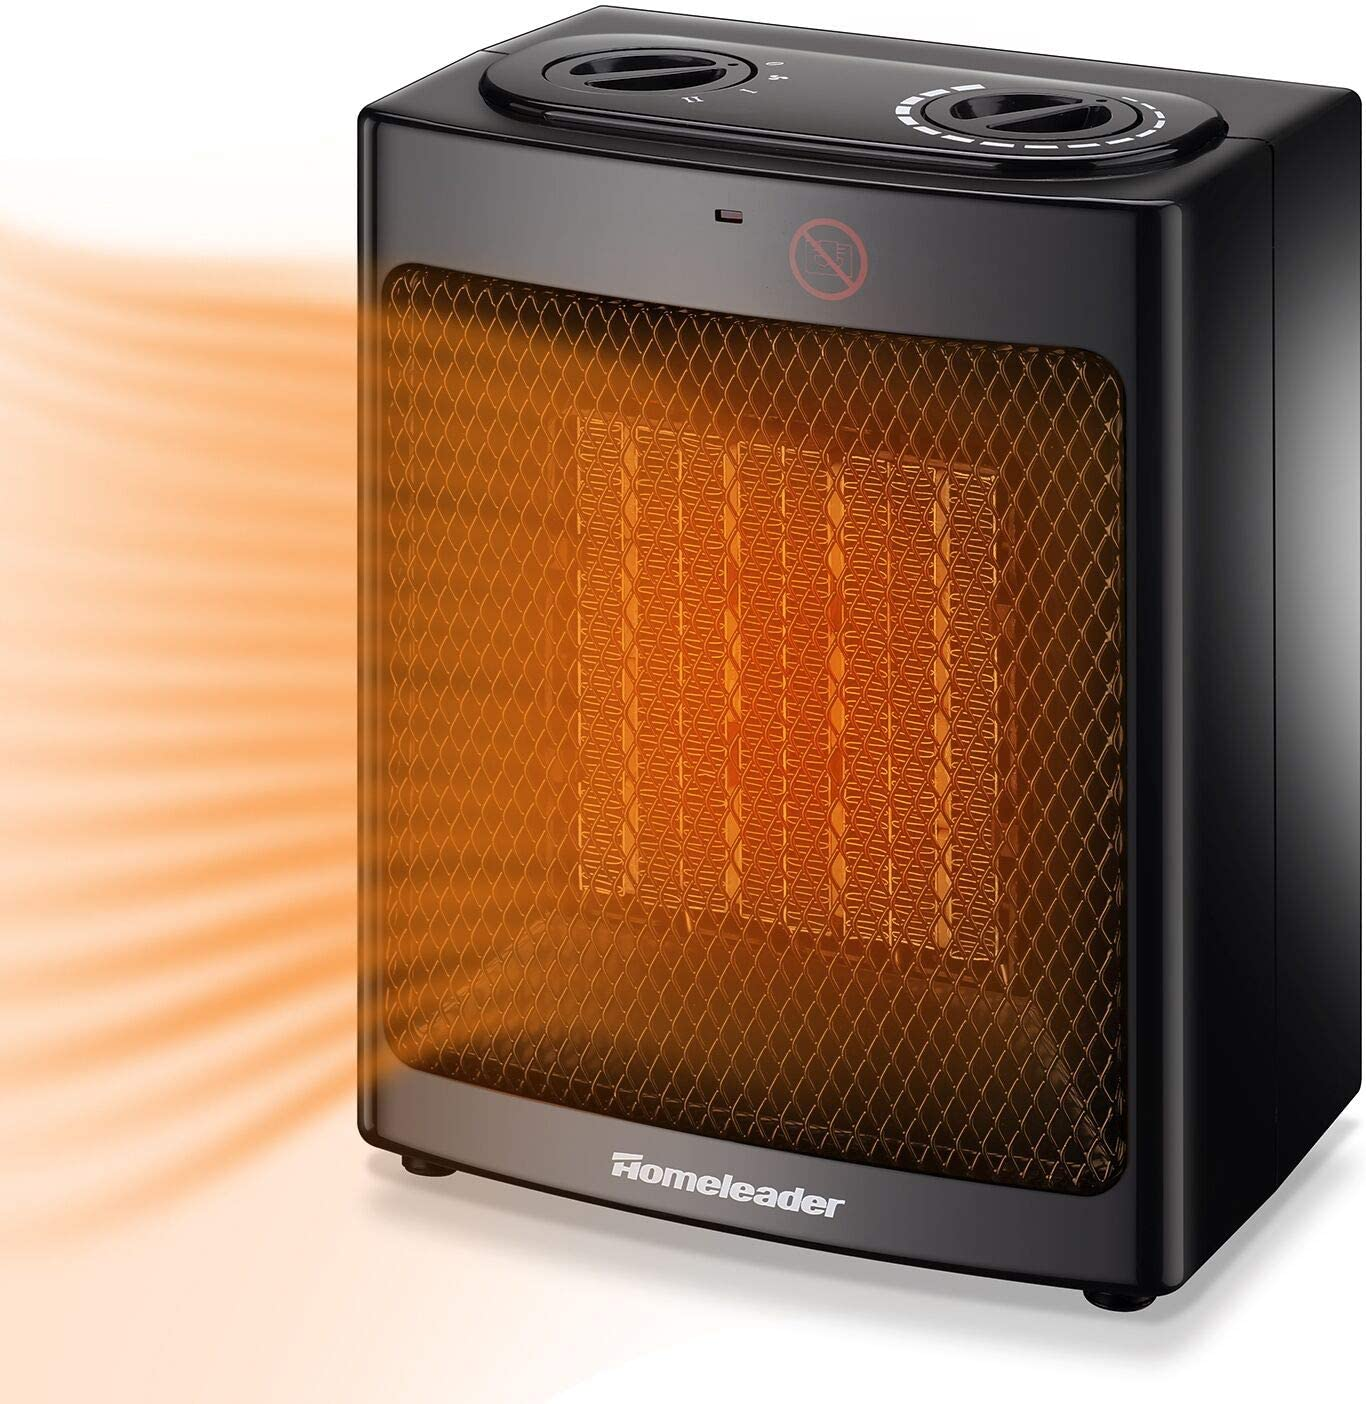 Homeleader Ceramic Space Heater for Home and Office, Portable Electric Heater with Adjustable Thermoststs, 750W/1500W NSB-150C6